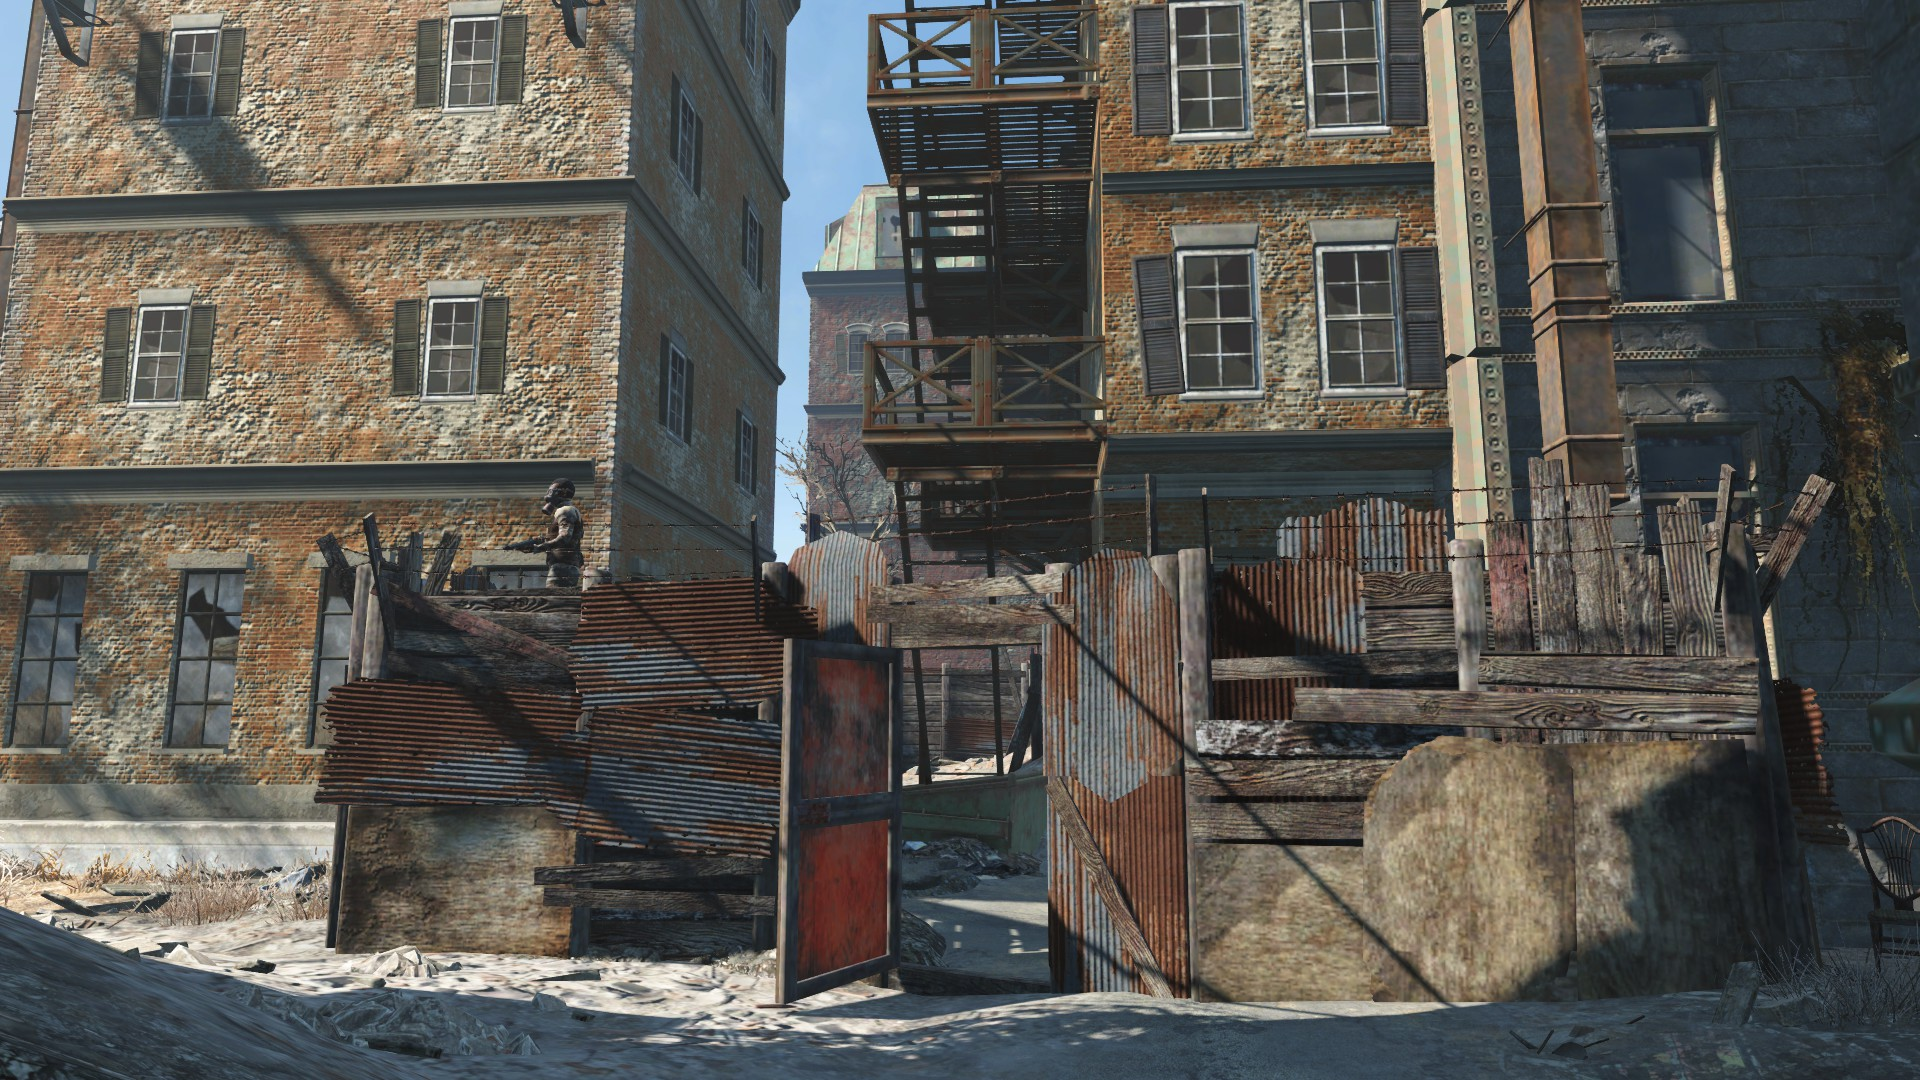 Raider alleyway outpost | Fallout Wiki | FANDOM powered by Wikia